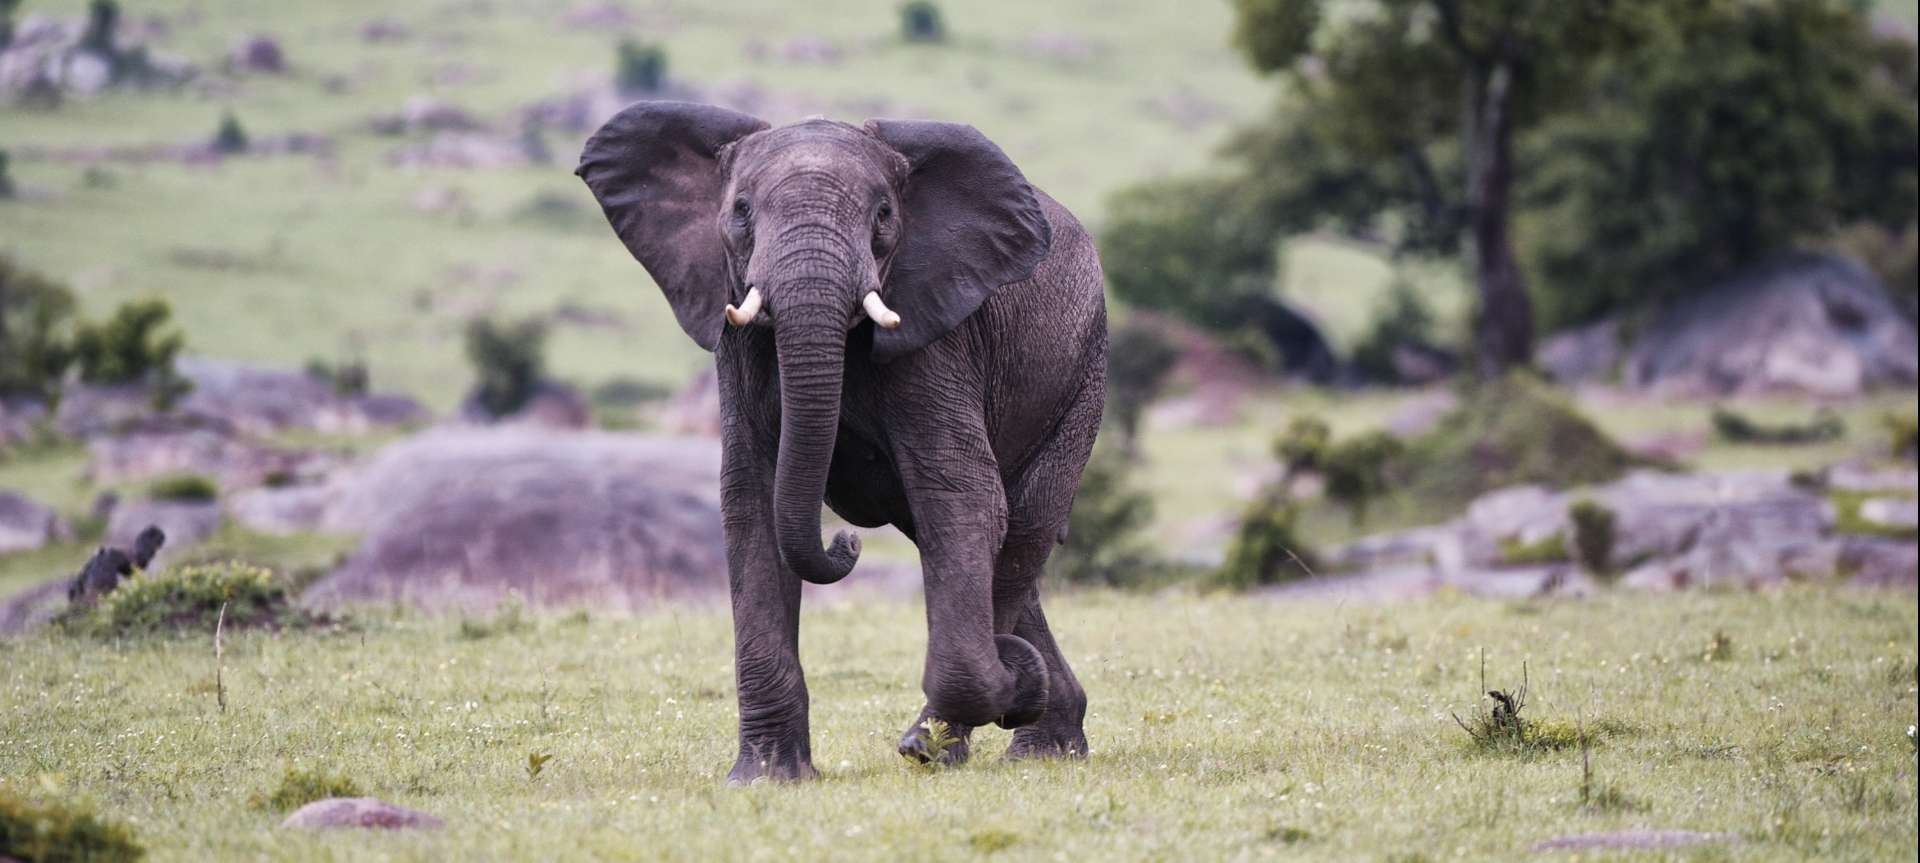 An elephant in its natural habitat